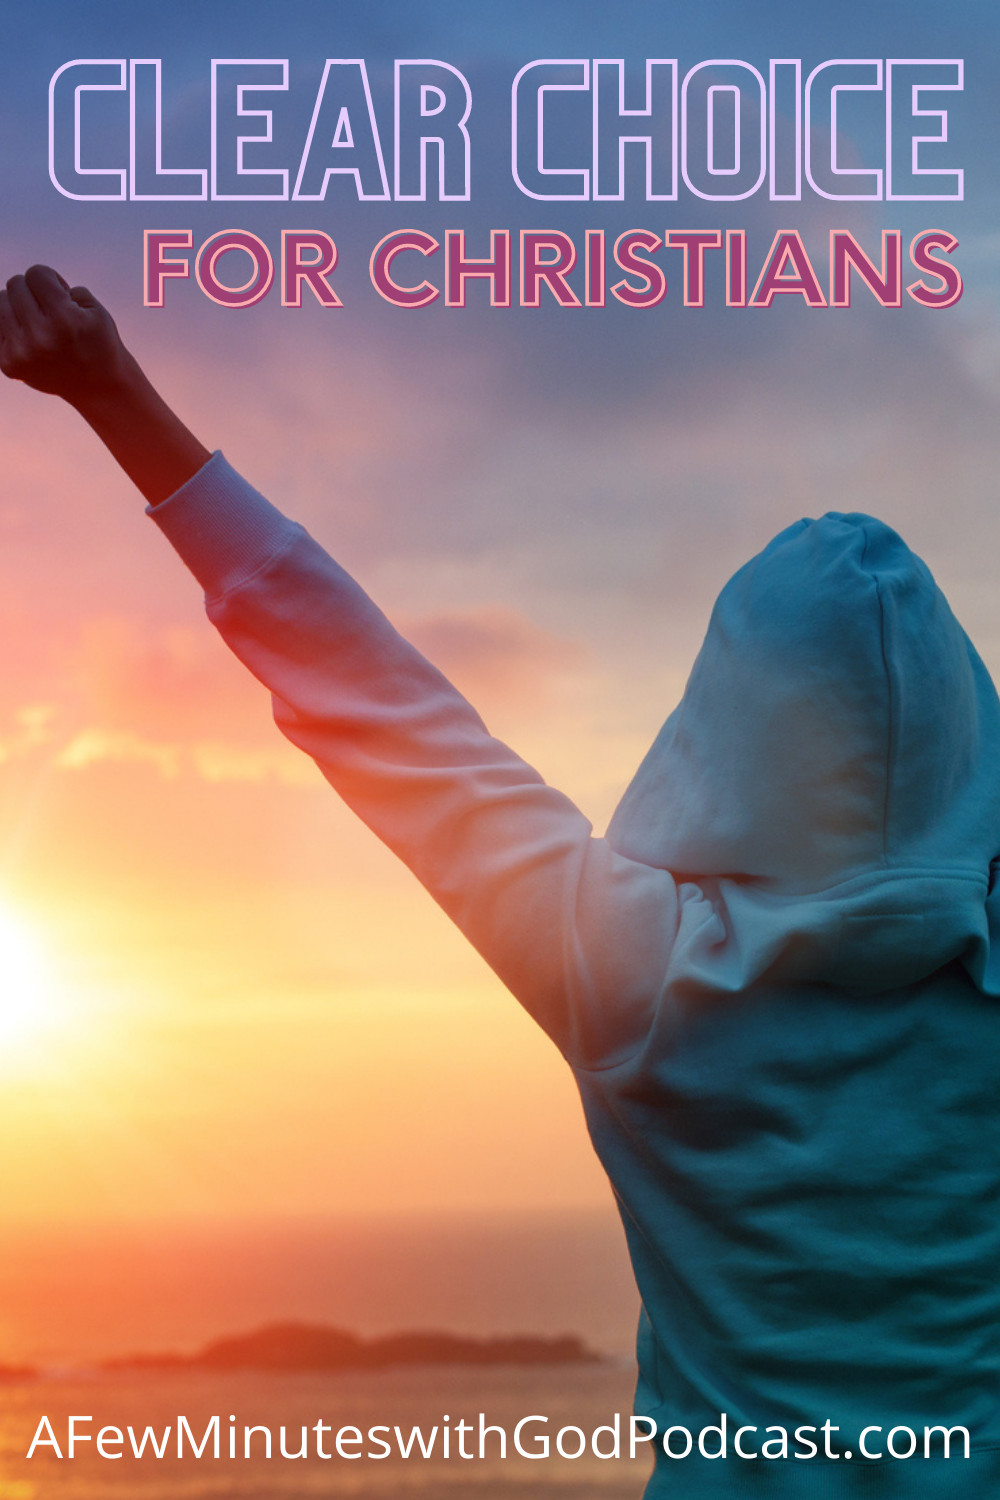 Clear Choice | The clear choice is obvious for a Christian who is faced with obstacles, debates, and sadness that threatens to push us into depression. What can we do? The choice is clear. Listen to this episode of A Few Minutes with God. | #podcast #christianpodcast #clearchoiceforchristians #christians #christianpodcast #christianity